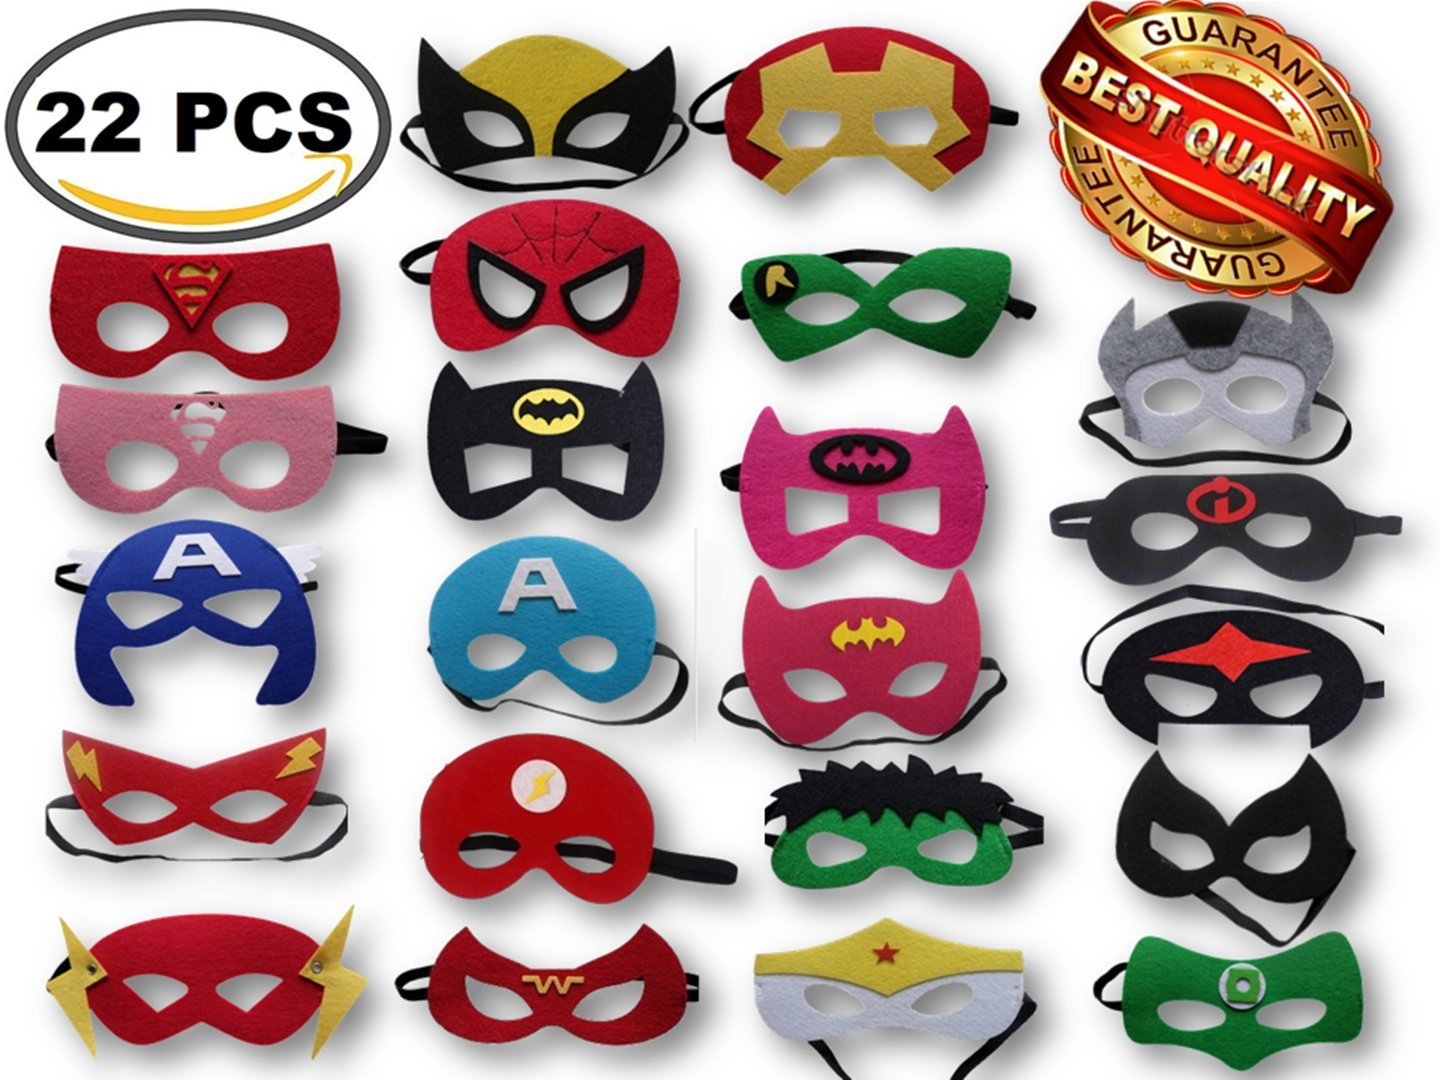 Superhero Party Masks, Multiple Sizes Through ADJUSTABLE Elastic Band, for Kids, Girls and Boys for Birthday Halloween or Avengers Party Supplies to Decoration (22 Pieces) by Gazelle's Goods